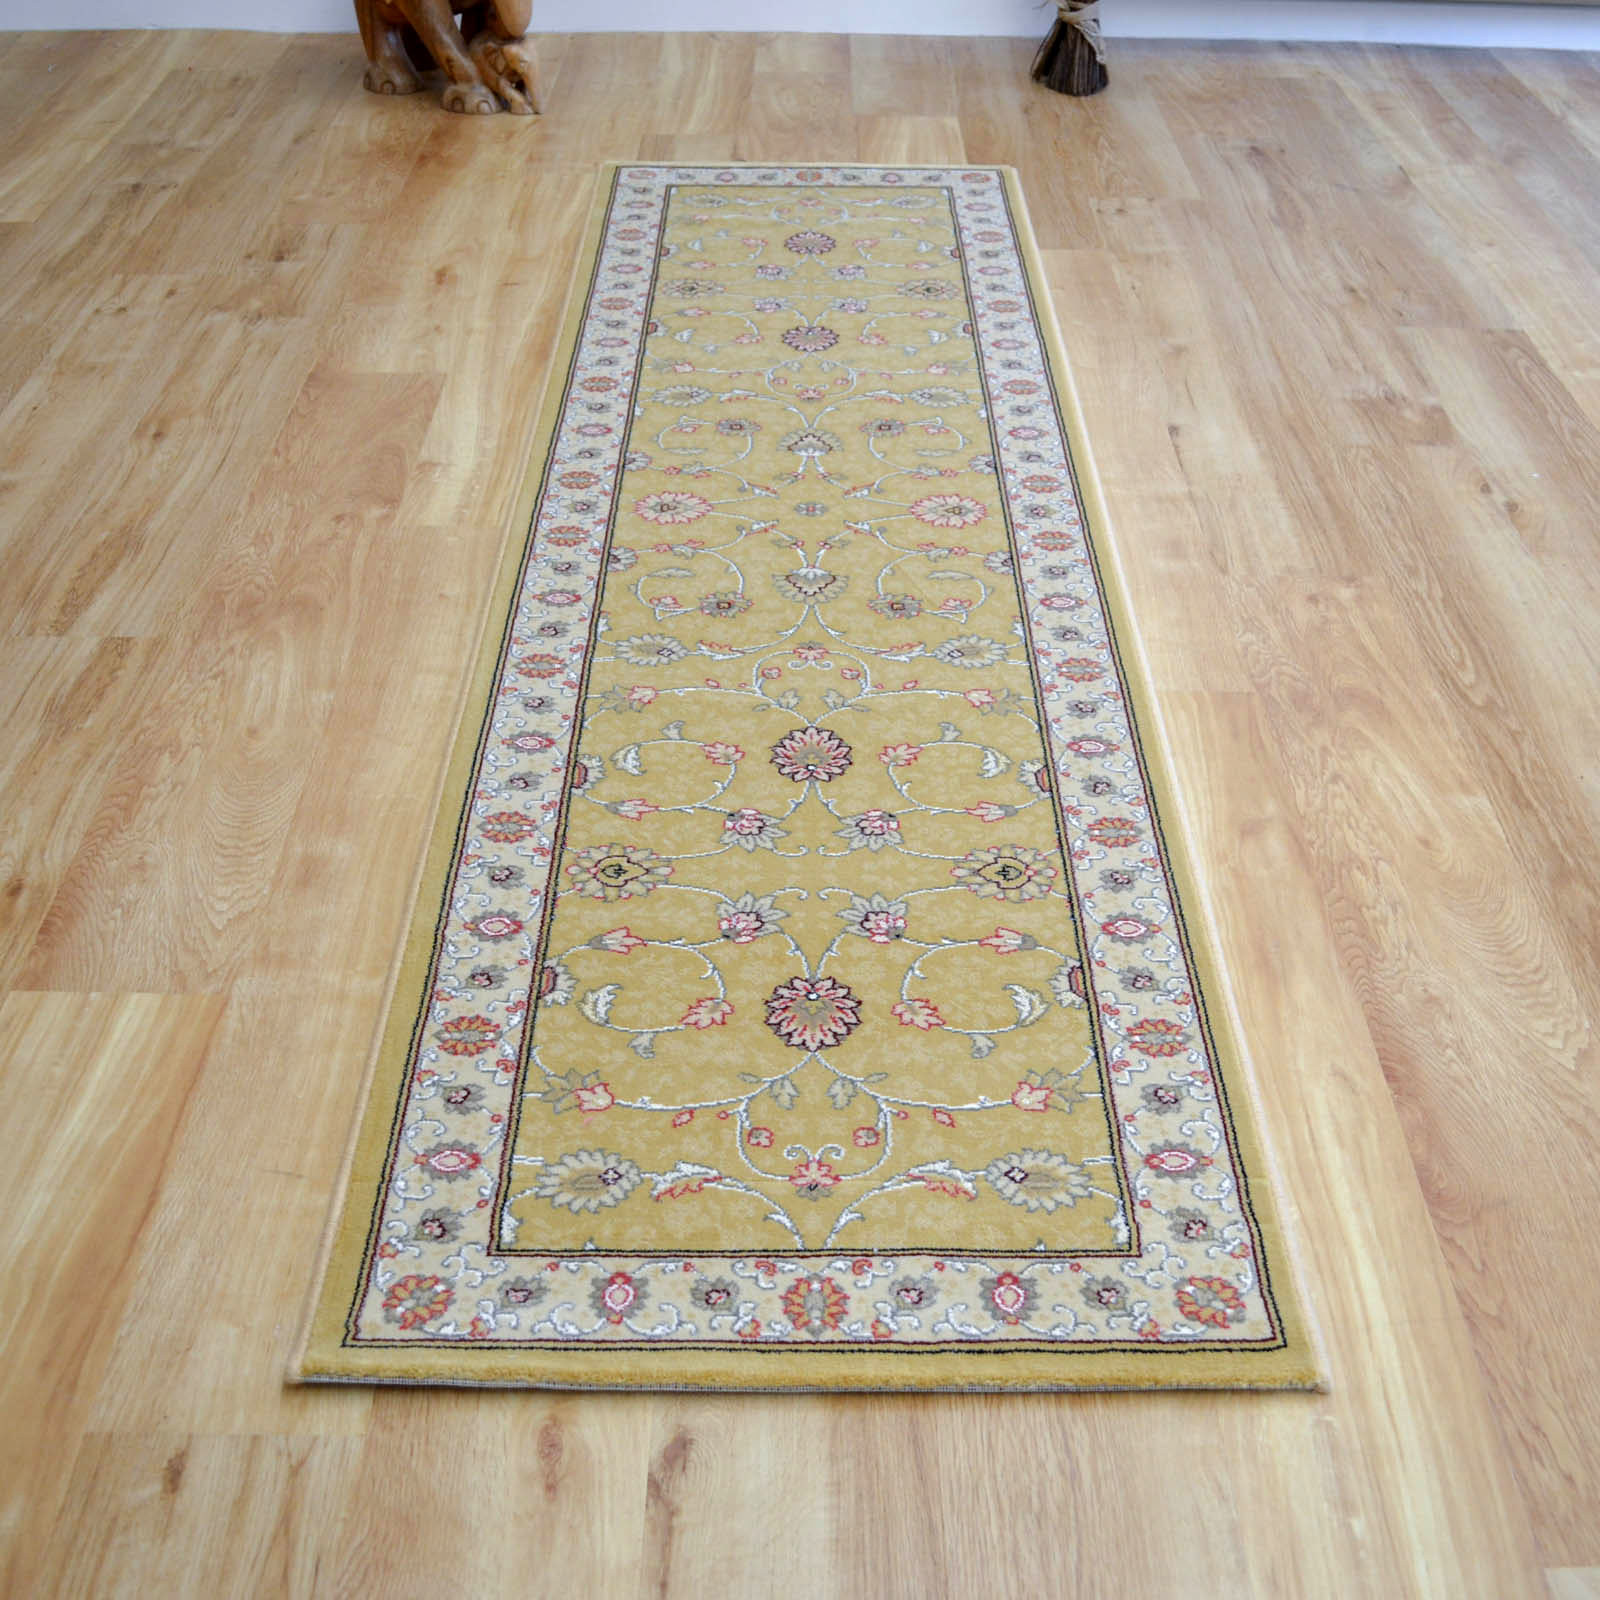 Noble Art Hall Runners 6529 790 in Gold